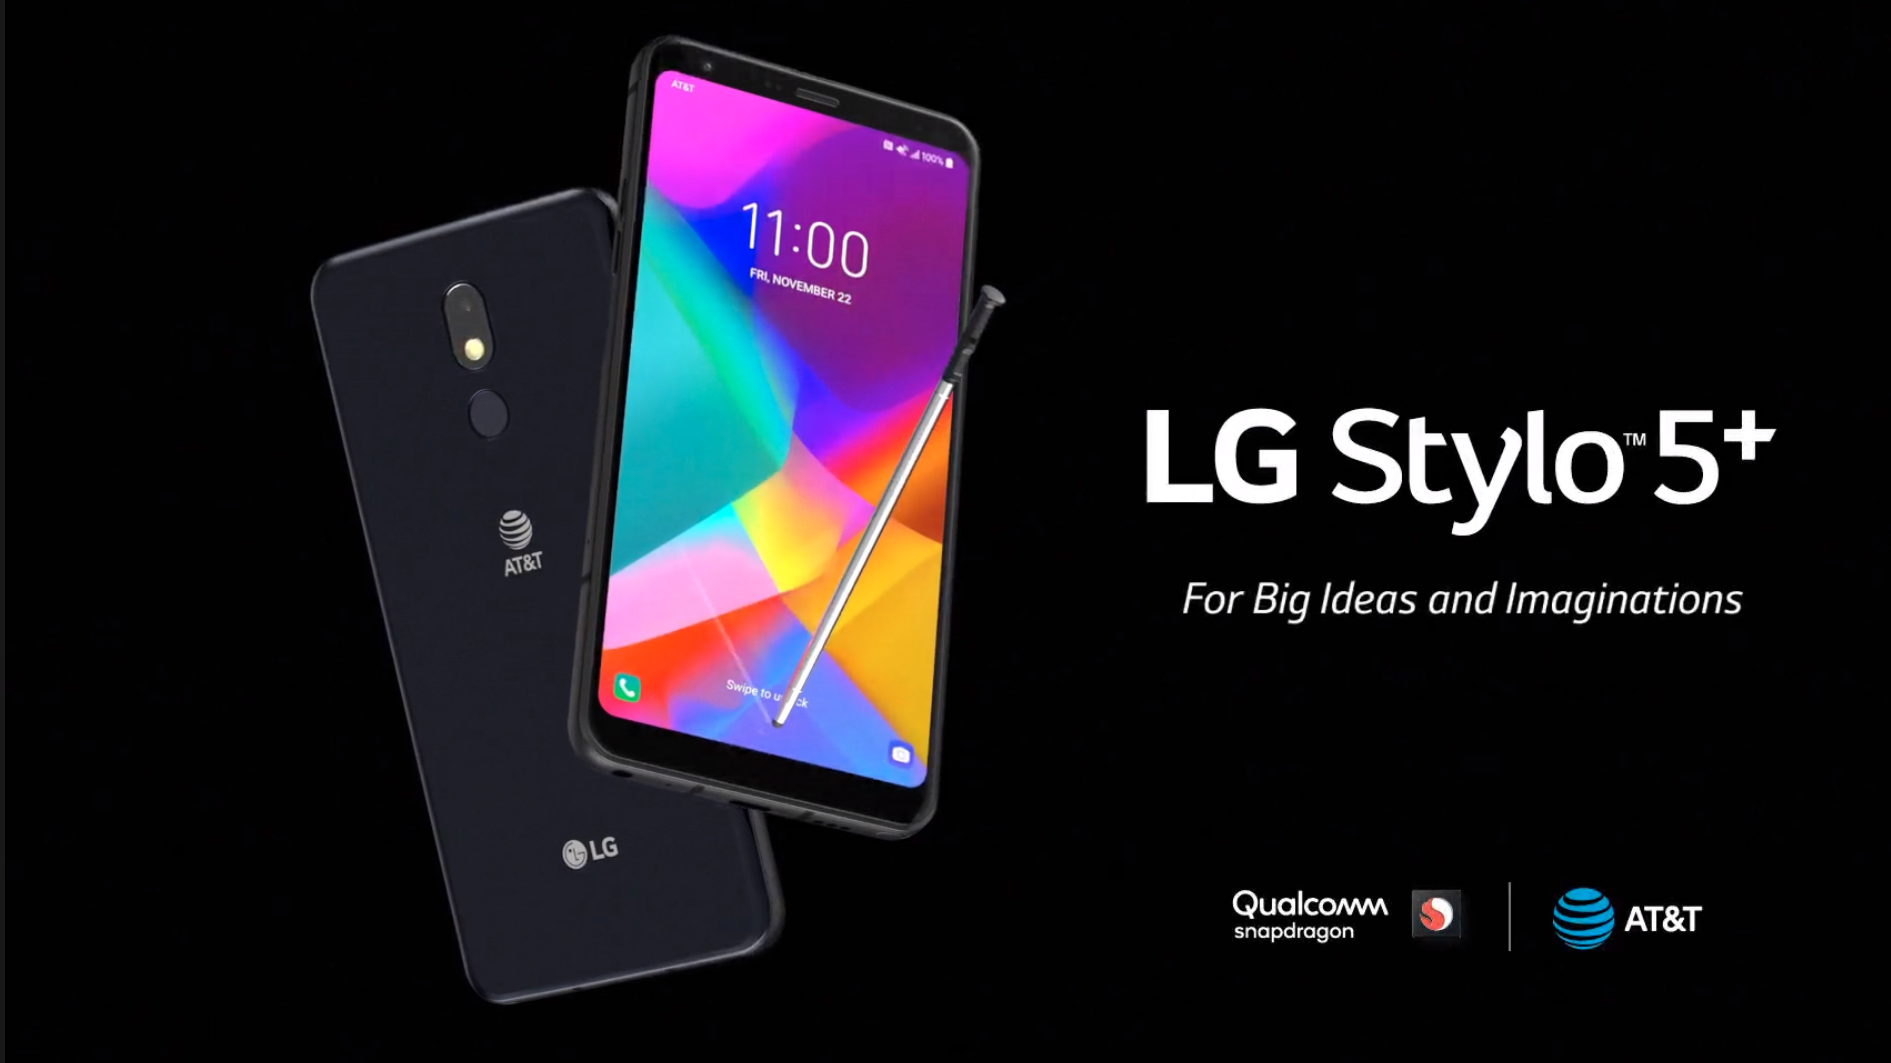 LG Stylo 5+ goes on sale at AT&T with upgraded front-facing camera